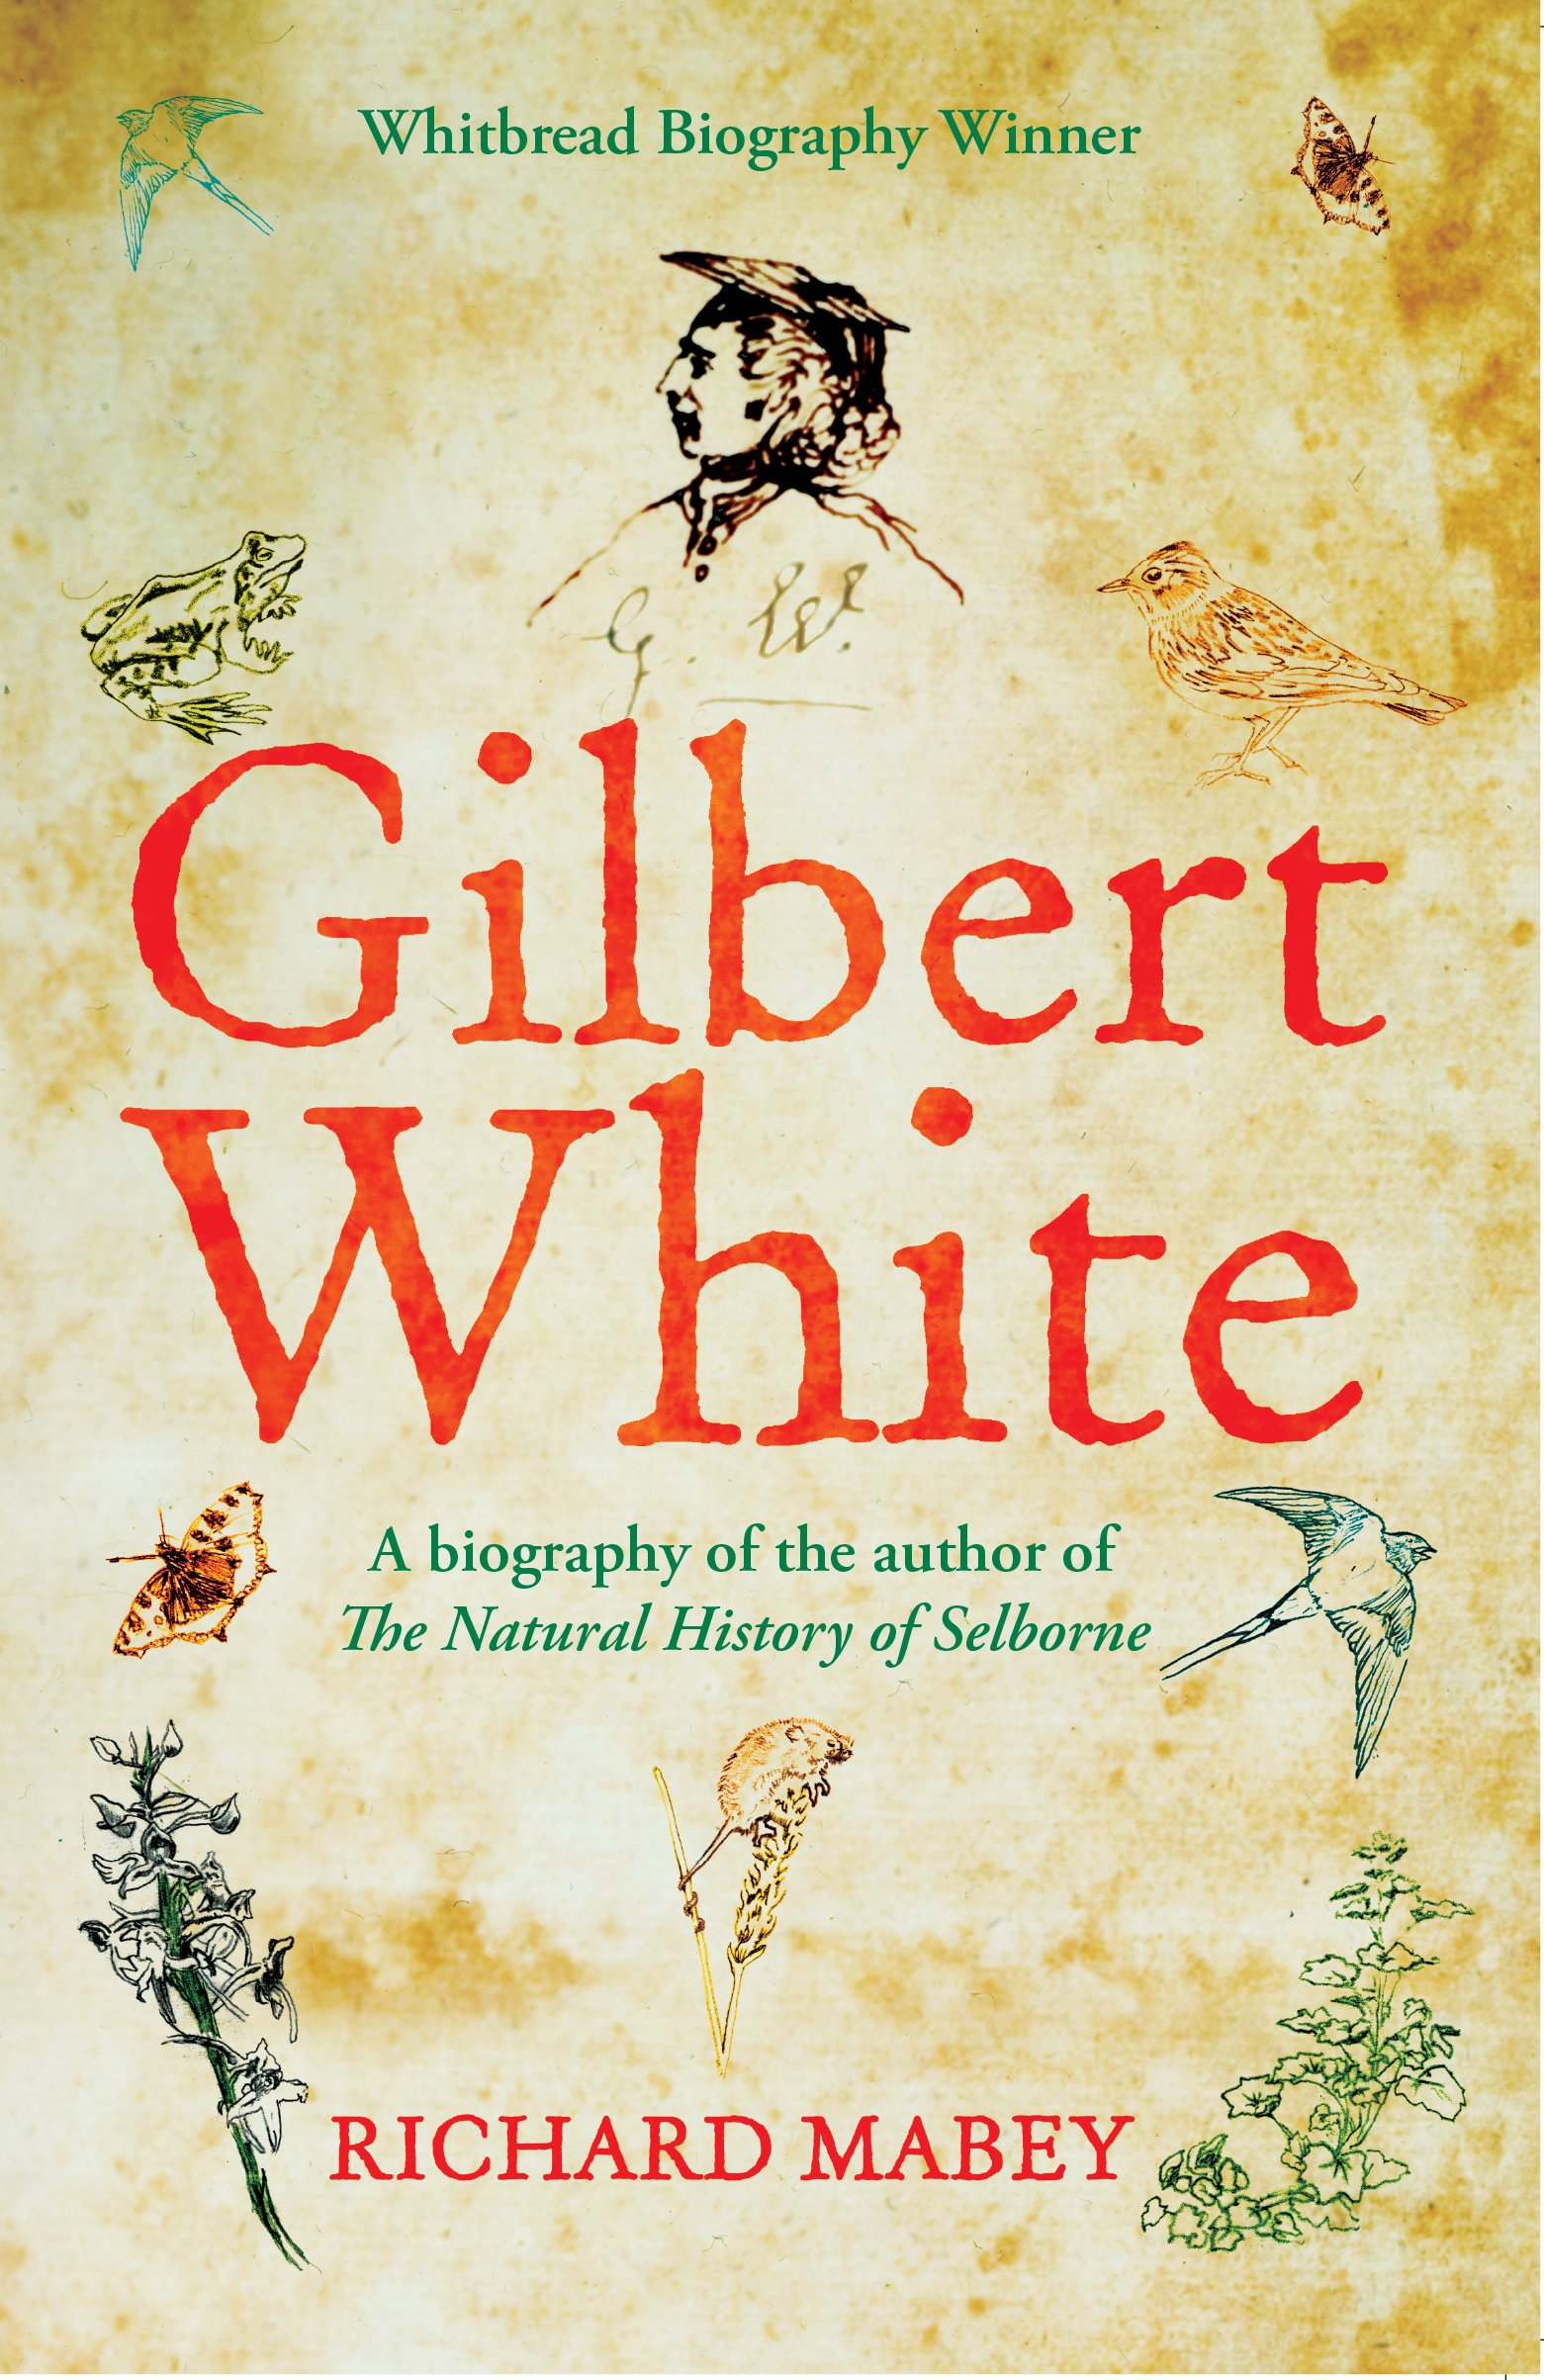 Gilbert White: A biography of the author of The Natural History of Selborne: Amazon.co.uk: Mabey, Richard: 9781861978073: Books